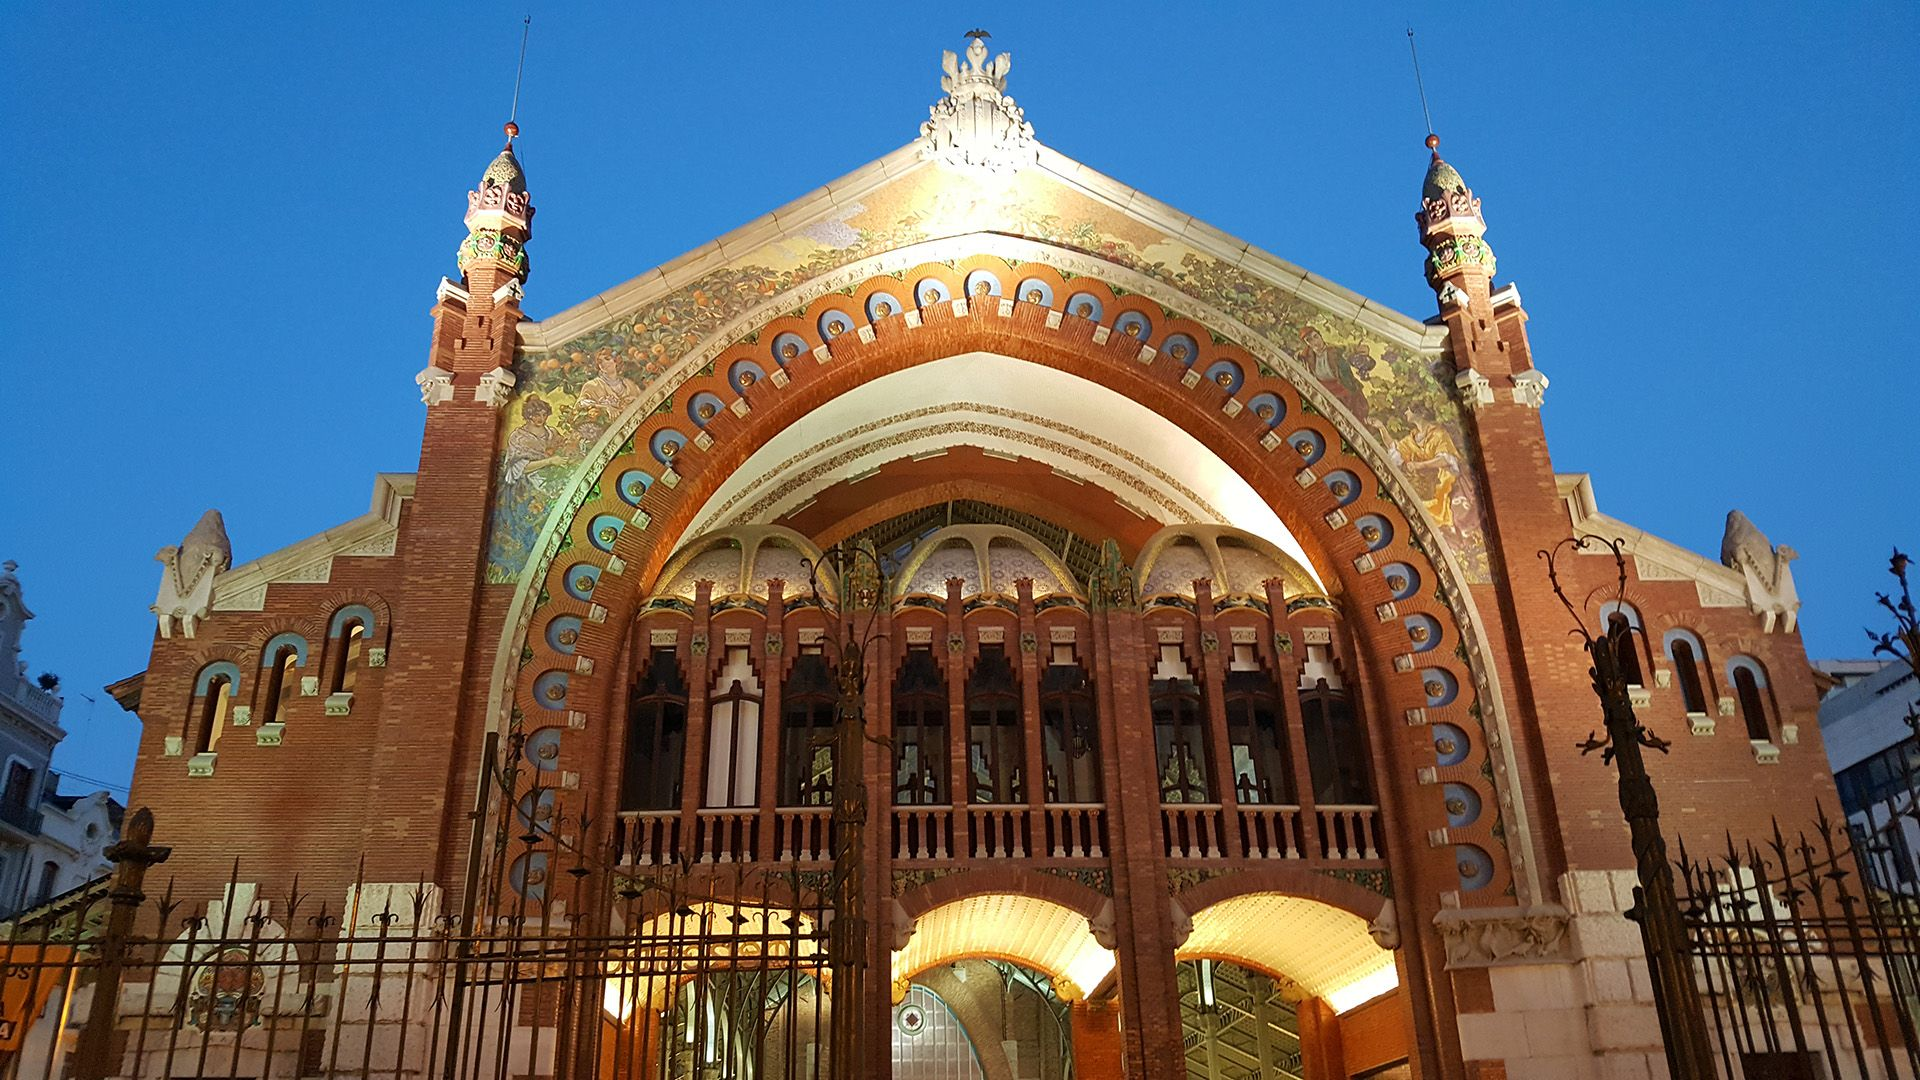 Guided Tour - The Modernist Valencia